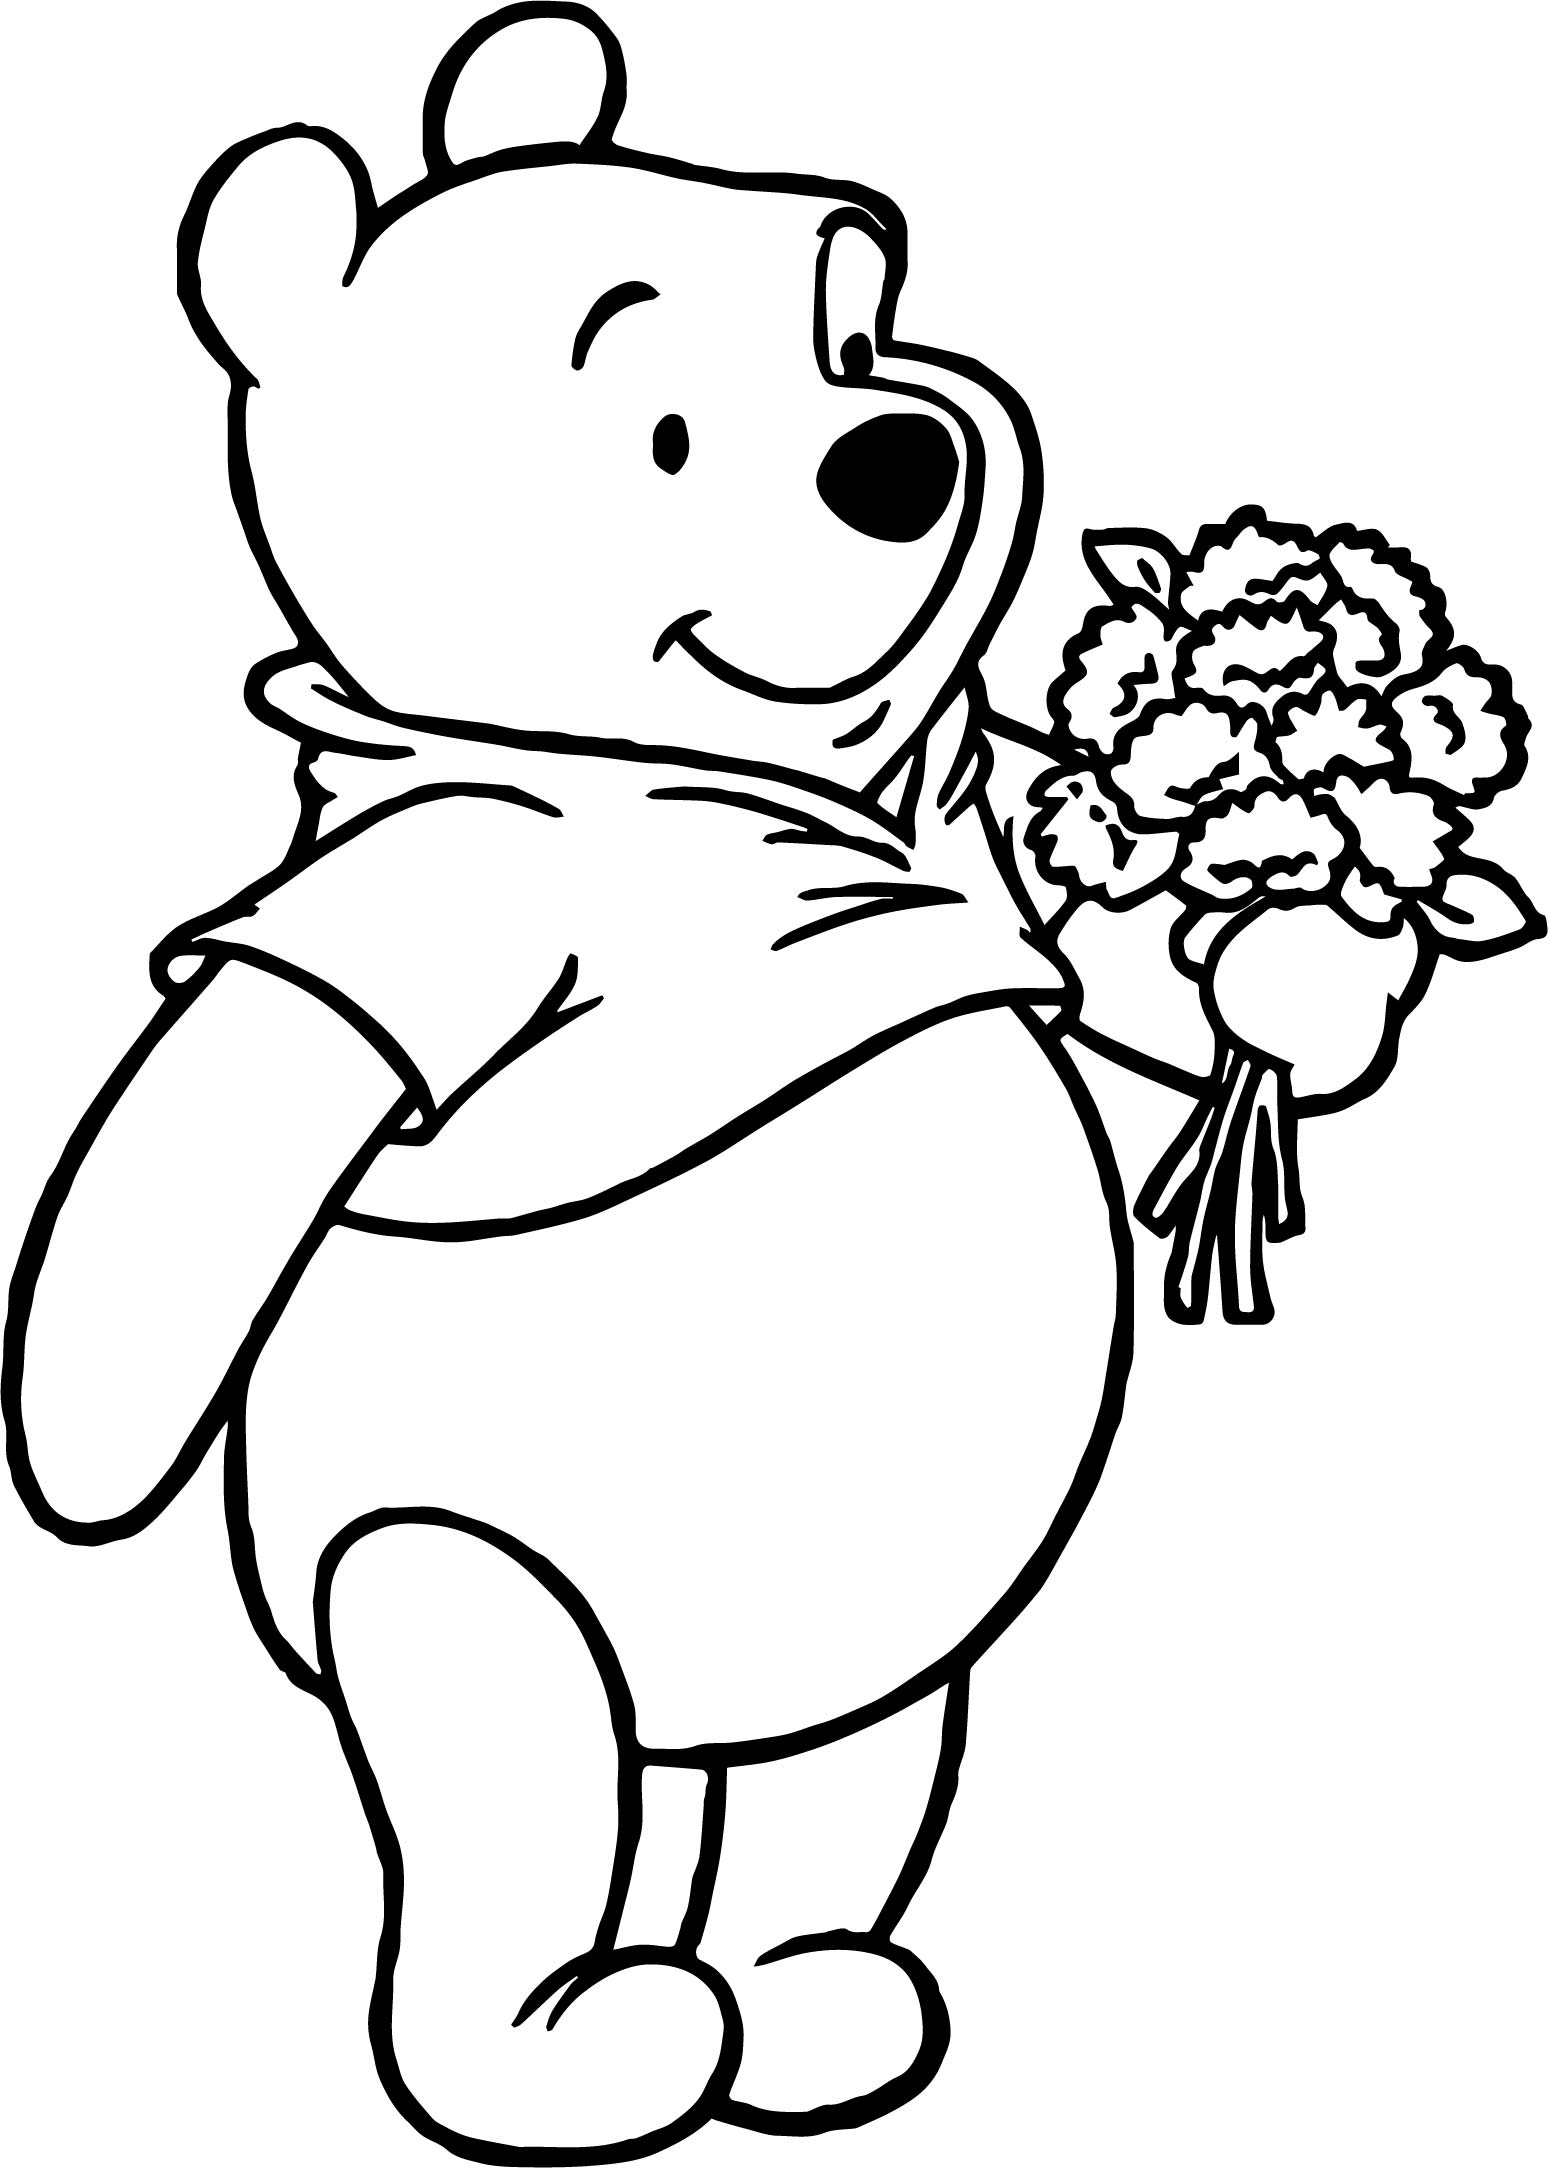 Pooh Loves Flowers Coloring Page